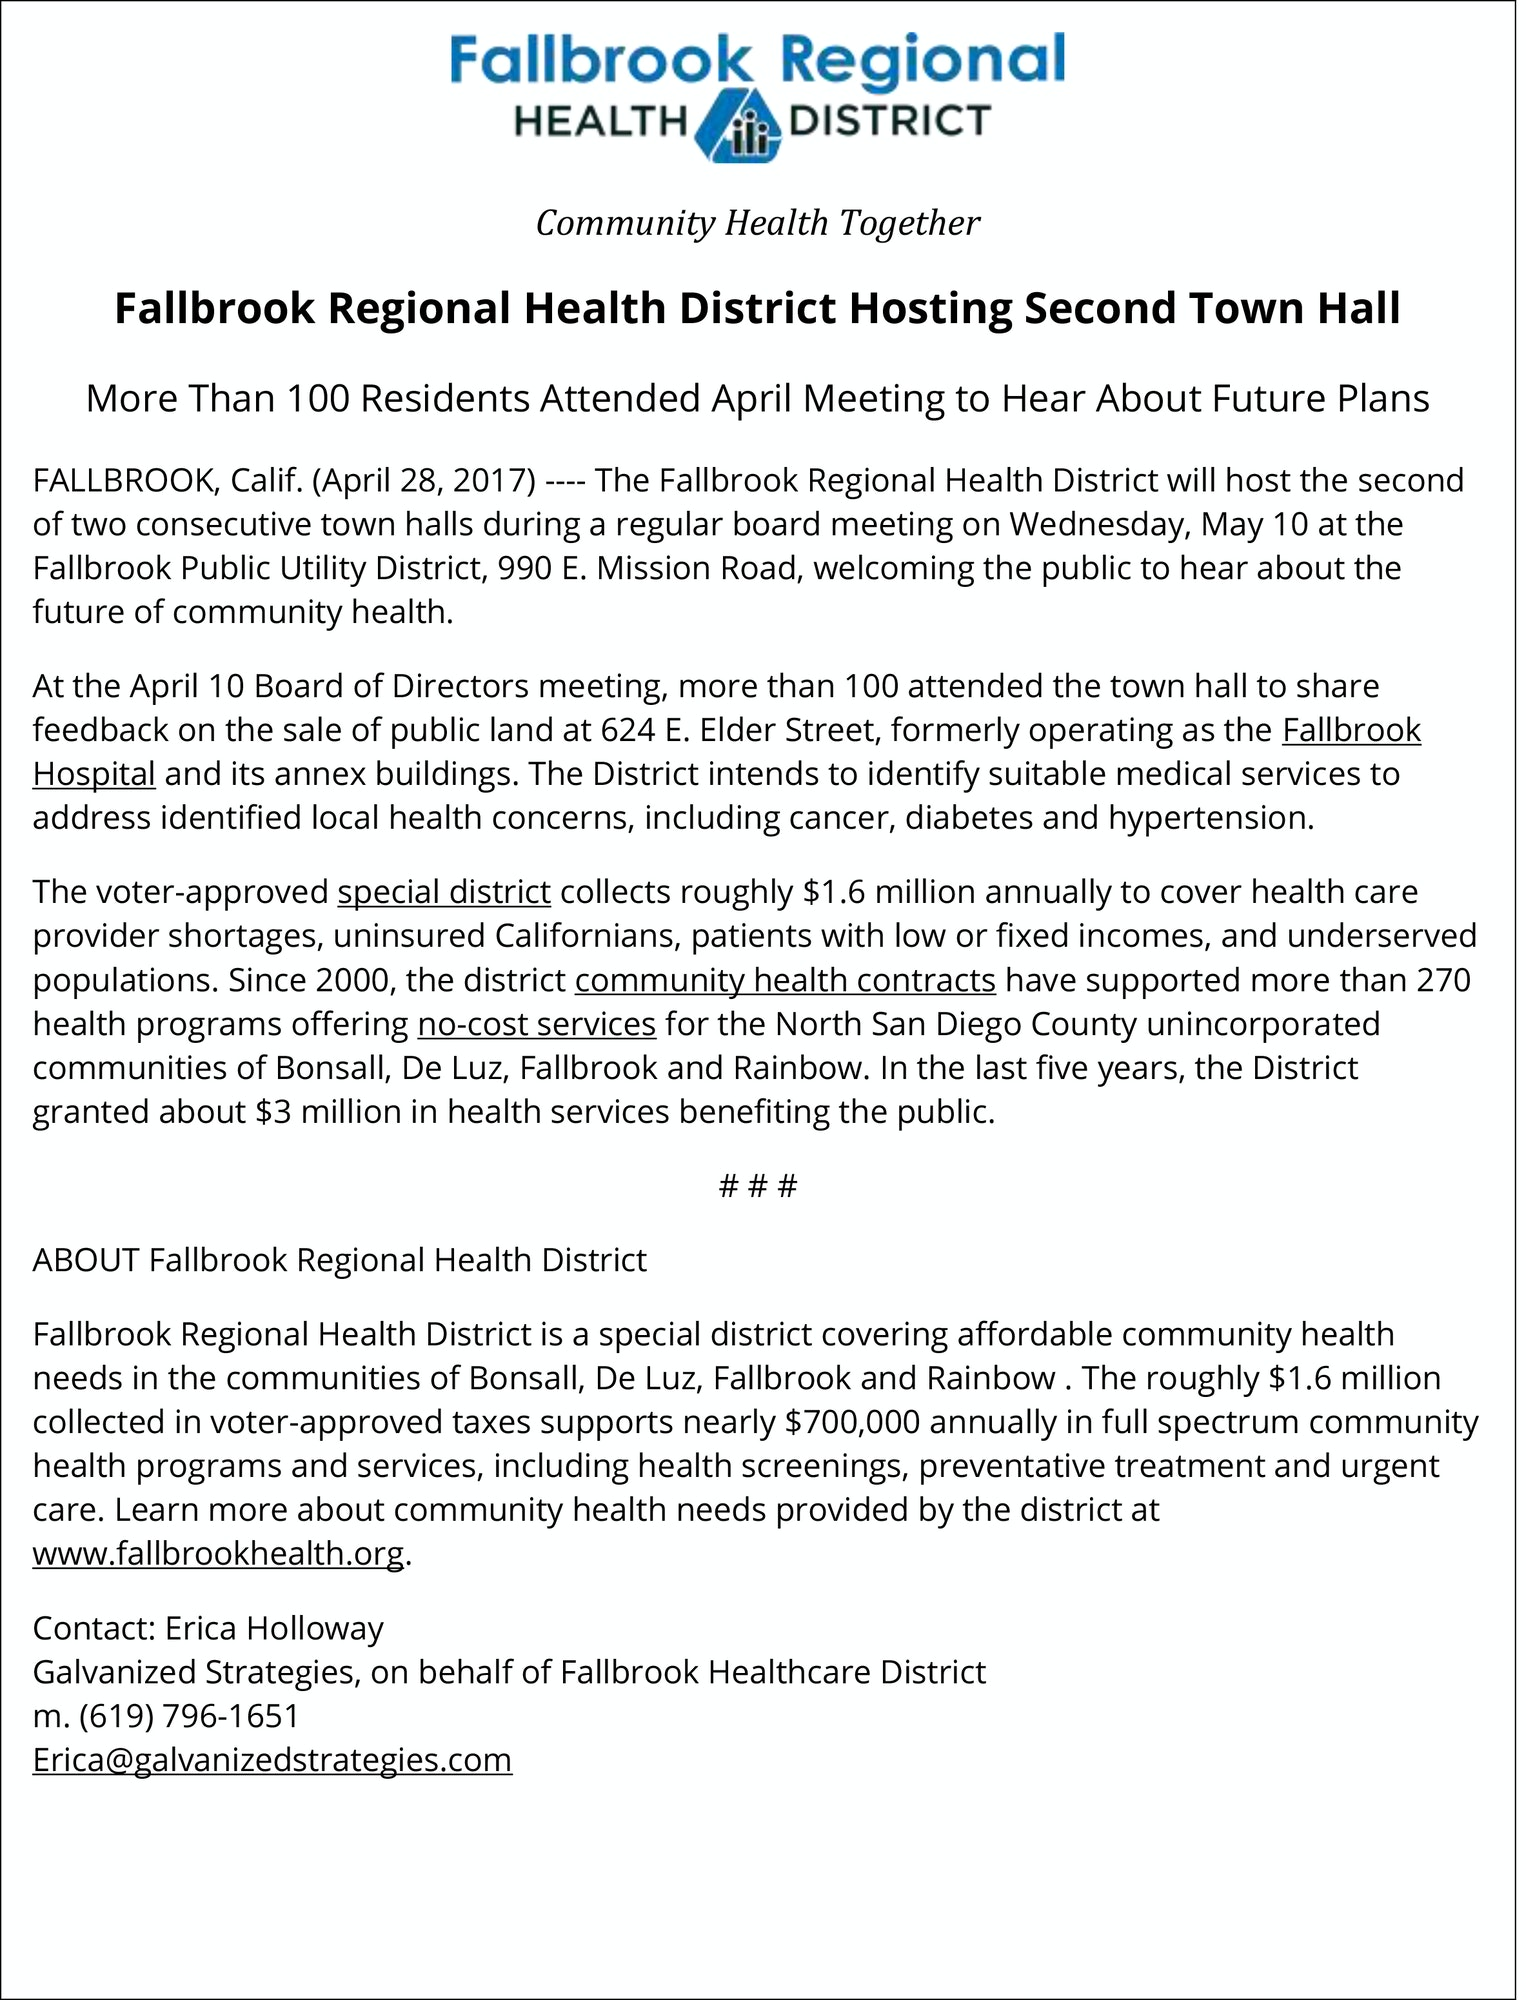 "Fallbrook Regional Health District Hosted Town Hall More Than 100 Residents Attended Meeting to Hear About Future Plans FALLBROOK, Calif. (April 14, 2017) ---- The Fallbrook Regional Health District hosted the first of two consecutive town halls during a regular board meeting on Wednesday, April 12 drawing more than 100 interested residents to hear about future plans for community health. The District Board of Directors sought public feedback on the sale of public land at 624 E. Elder Street, formerly operating as the Fallbrook Hospital and its annex buildings. The District intends to identify suitable medical services to address identified local health concerns, including cancer, diabetes and hypertension. The voter-approved special district collects roughly $1.6 million annually to cover health care provider shortages, uninsured Californians, patients with low or fixed incomes, and underserved populations.  Since 2000, the district community health contracts have supported more than 270 health programs offering no-cost services for the North San Diego County unincorporated communities of Fallbrook, Bonsall, Rainbow and De Luz. In the last five years, the District granted about $3 million in health services benefiting the public. With a largely 55-plus population, many District contracts support senior programs offering transportation, health screenings and education as well as nutritious food options, including those delivered to the home.  ""Fallbrook residents take community involvement to a whole new level,"" said Executive Director Bobbi Palmer of the Fallbrook Regional Health District. ""We were delighted with the town hall turnout and high interest in the fact sheets, annual report and other data points, which are also available on our website."" www.fallbrookhealth.org Other health contracts support underserved families and youth by offering dental and eye exams, access to a local food pantry, disability support and mental and behavioral health services. In addition to contractual services, Fallbrook Regional Health District directly operates health programs including the Community Collaborative Health & Wellness Committee, Fallbrook Community Healthcare Resource Directory, Healthcare Hero, monthly Woman of Wellness (WOW) program, North County Community Collaborative Health Initiative and Wellness Walks that are held monthly. The second town hall will take place at 6 p.m. on May 10 at the Fallbrook Public Utility District, 990 E. Mission Road in Fallbrook."